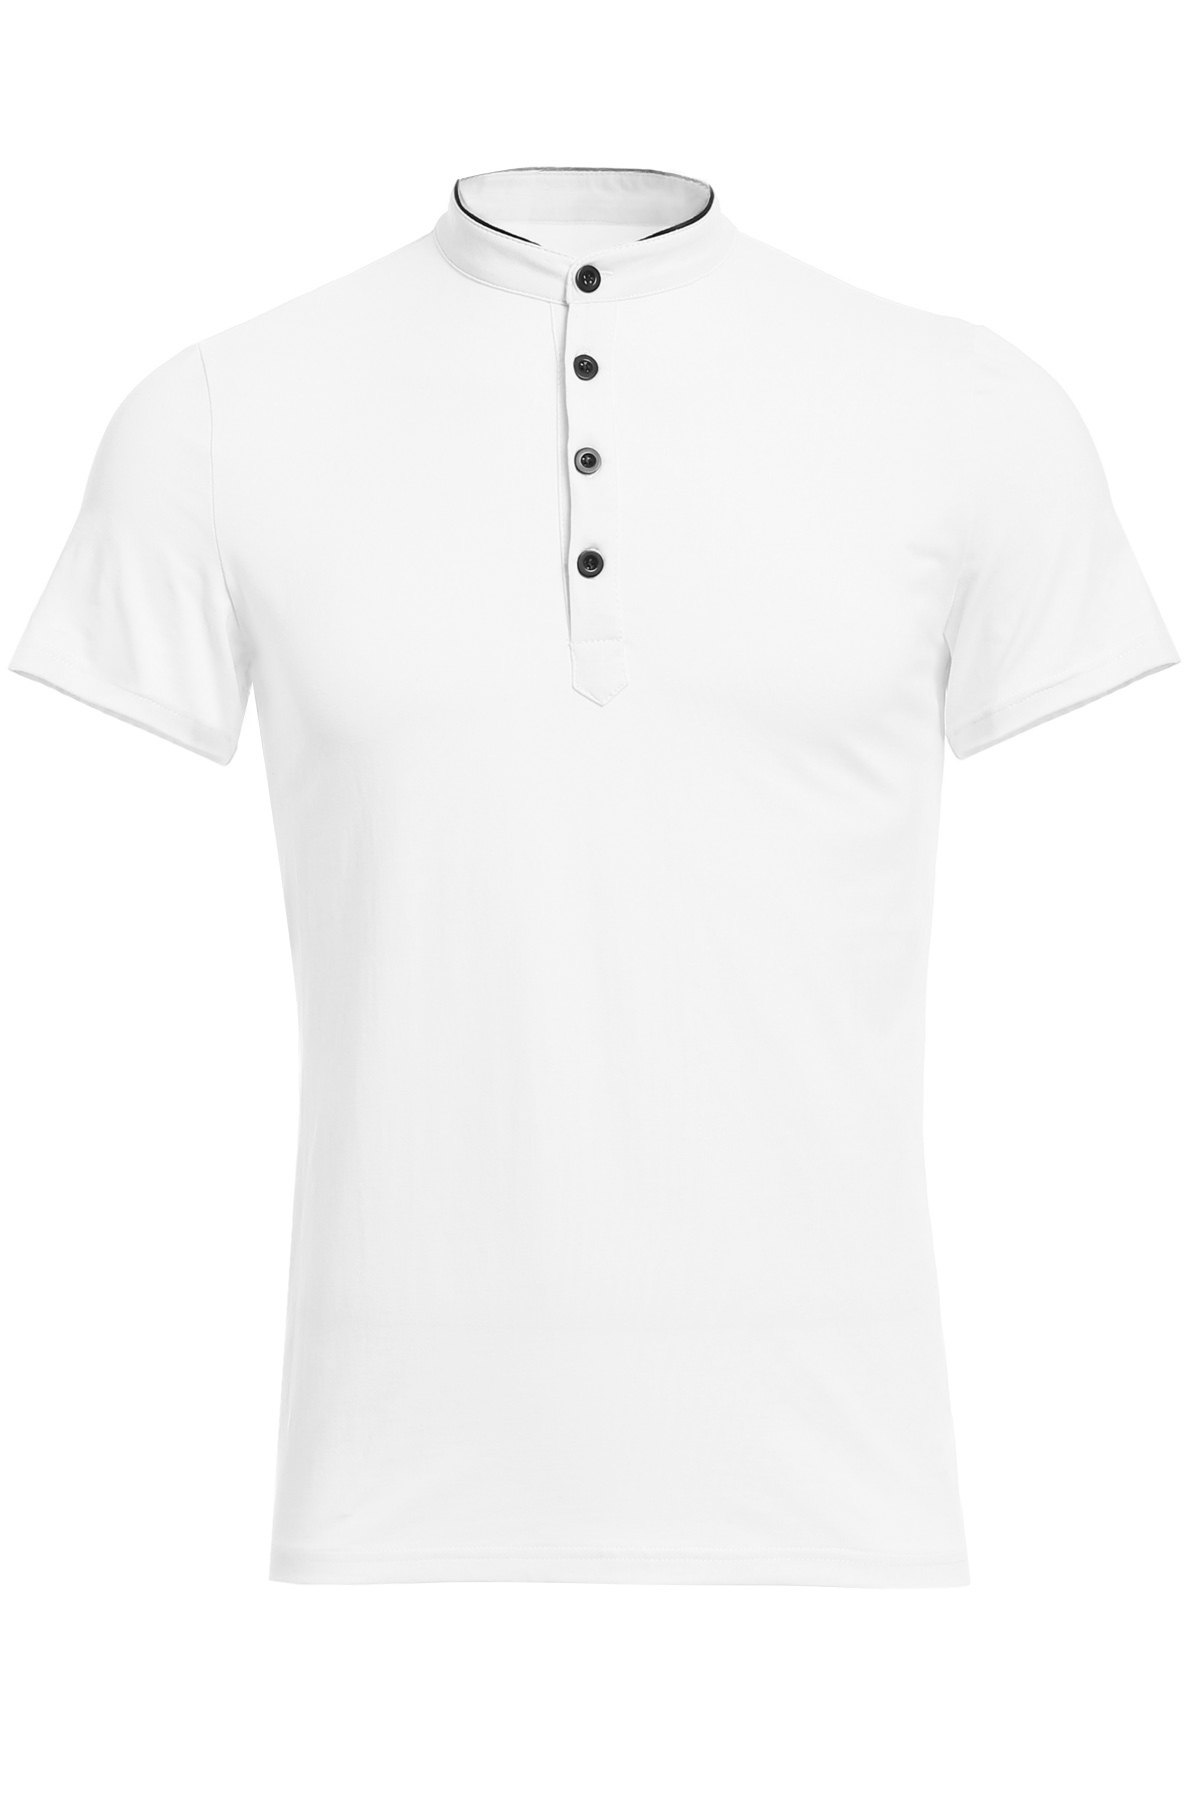 Vogue Stand Collar Multi-Button Color Spliced Short Sleeves Men's Polo T-Shirt - WHITE M